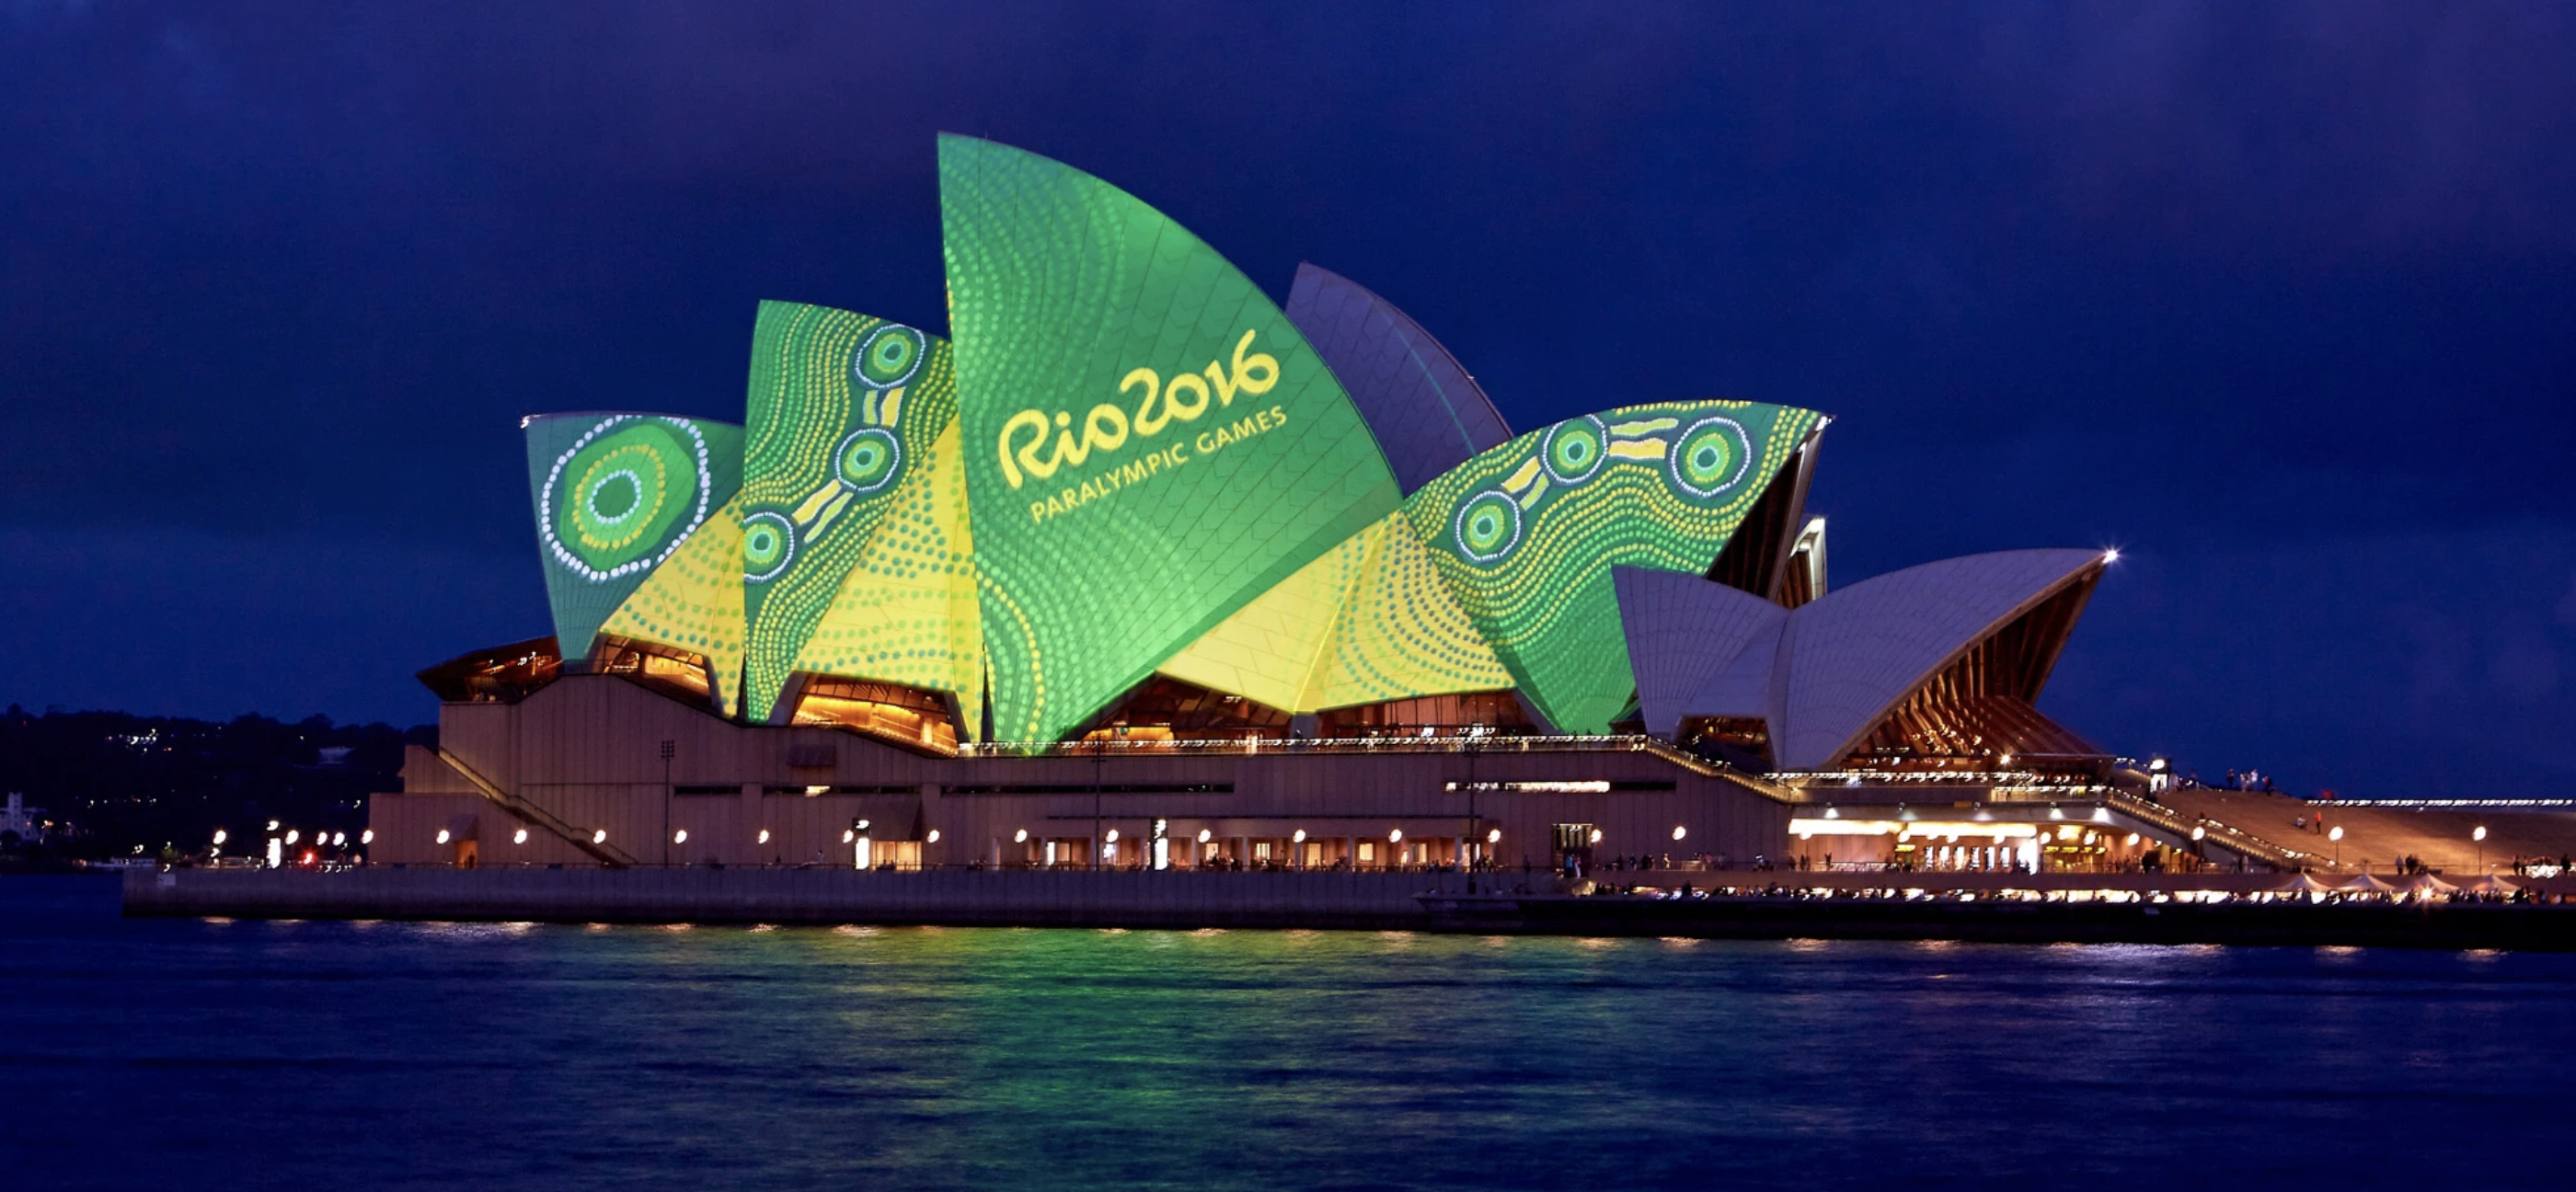 Australia's Rio 2016 Paralympians became Australia's first Olympic team to wear Aboriginal-themed uniforms. Balarinji lit up the sails of the Sydney Opera House with the designs, which represented strength through diversity.